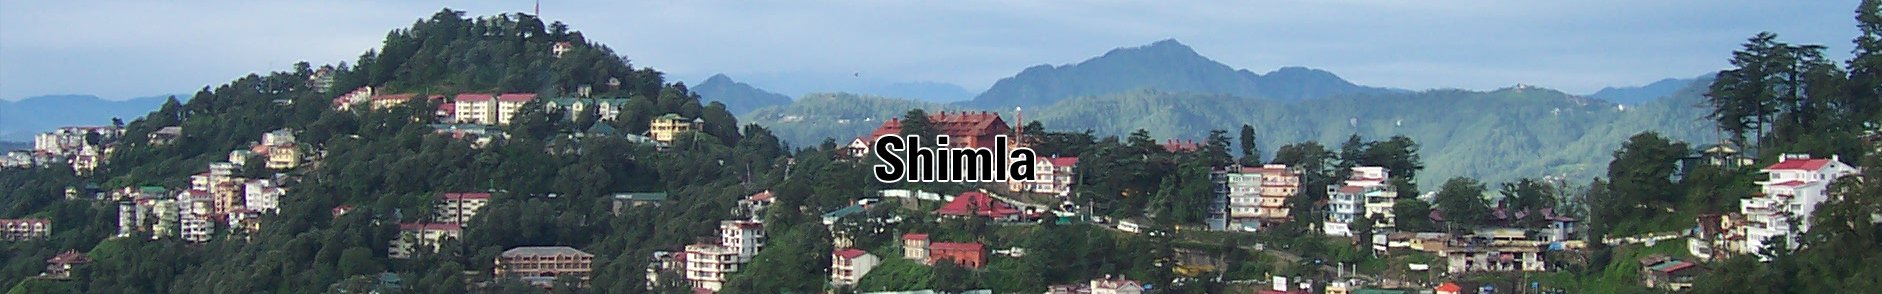 Shimla Hill Stations Holiday Packages